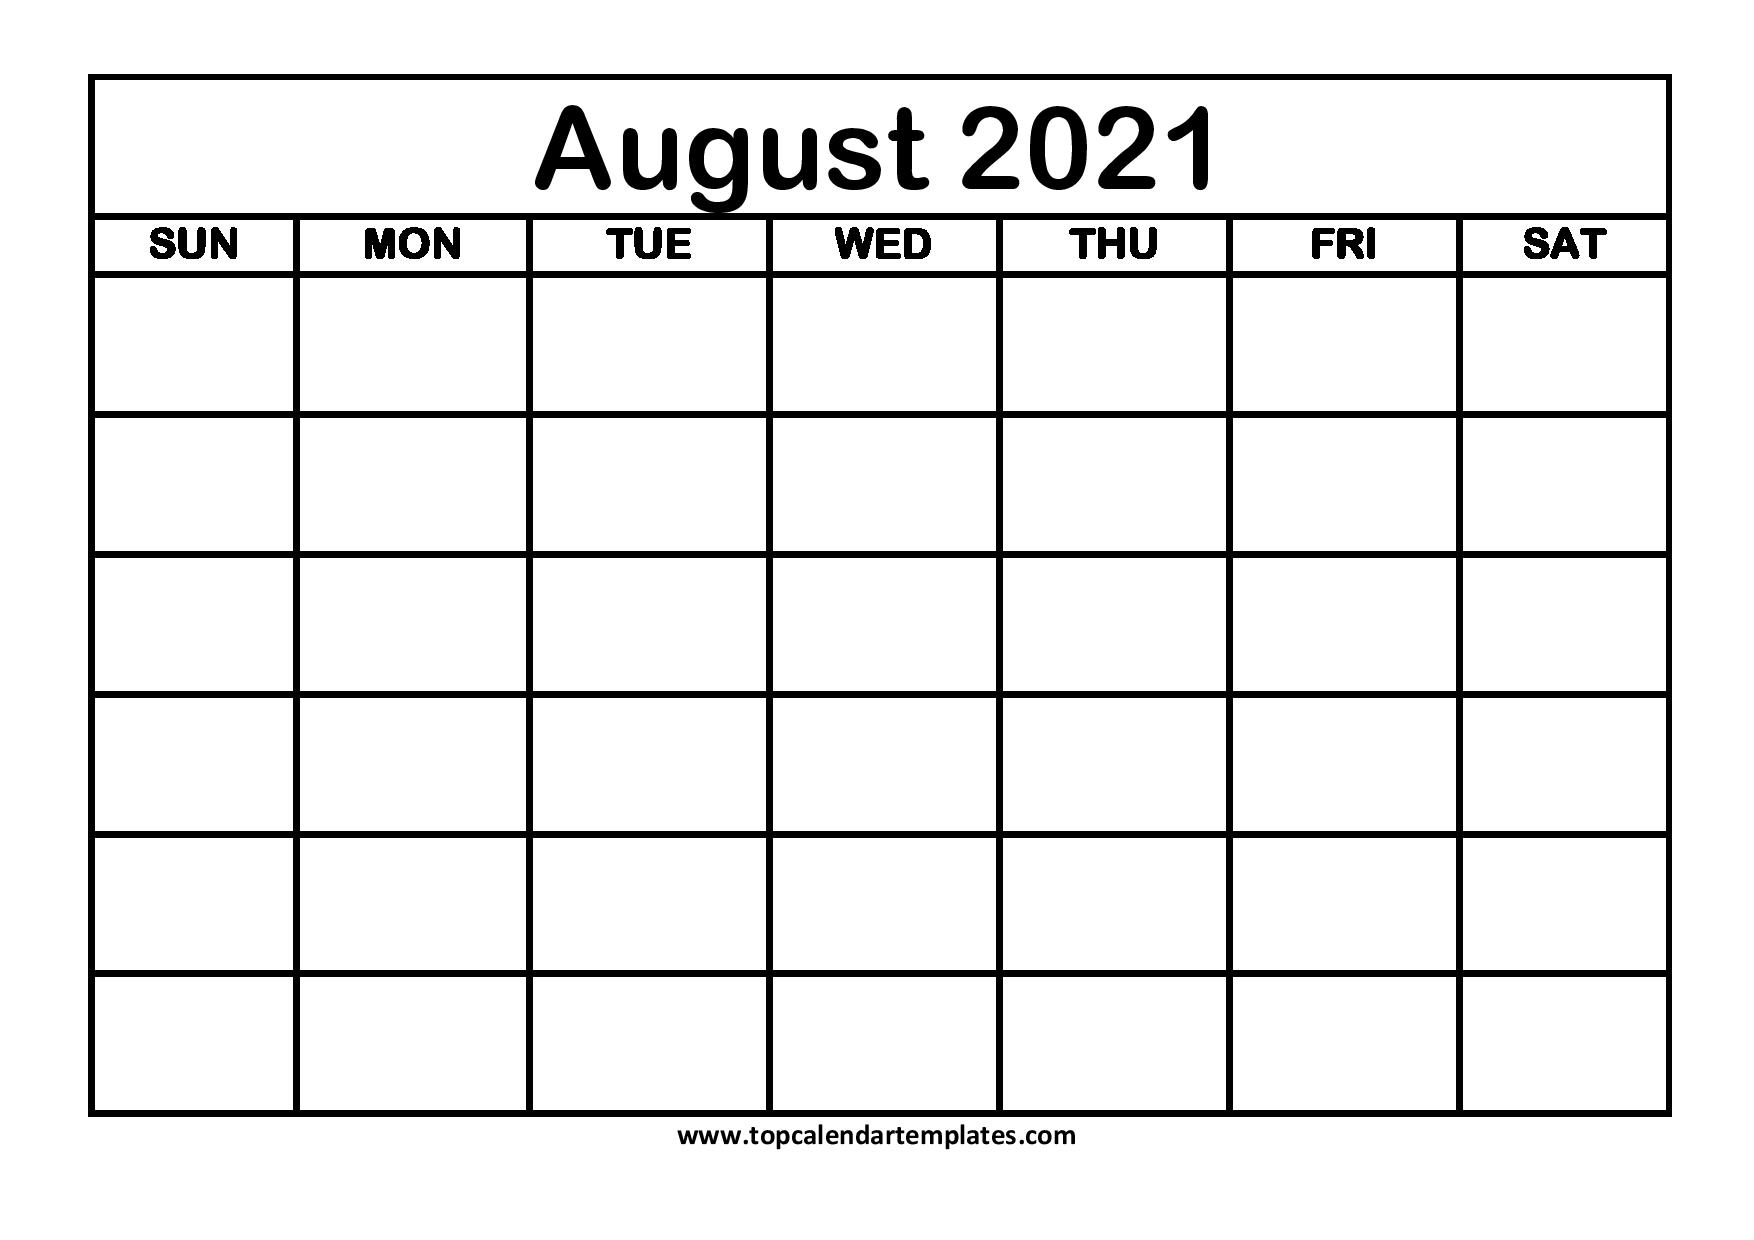 August 2021 Printable Calendar  Monthly Templates with August 2021 Template Calendar